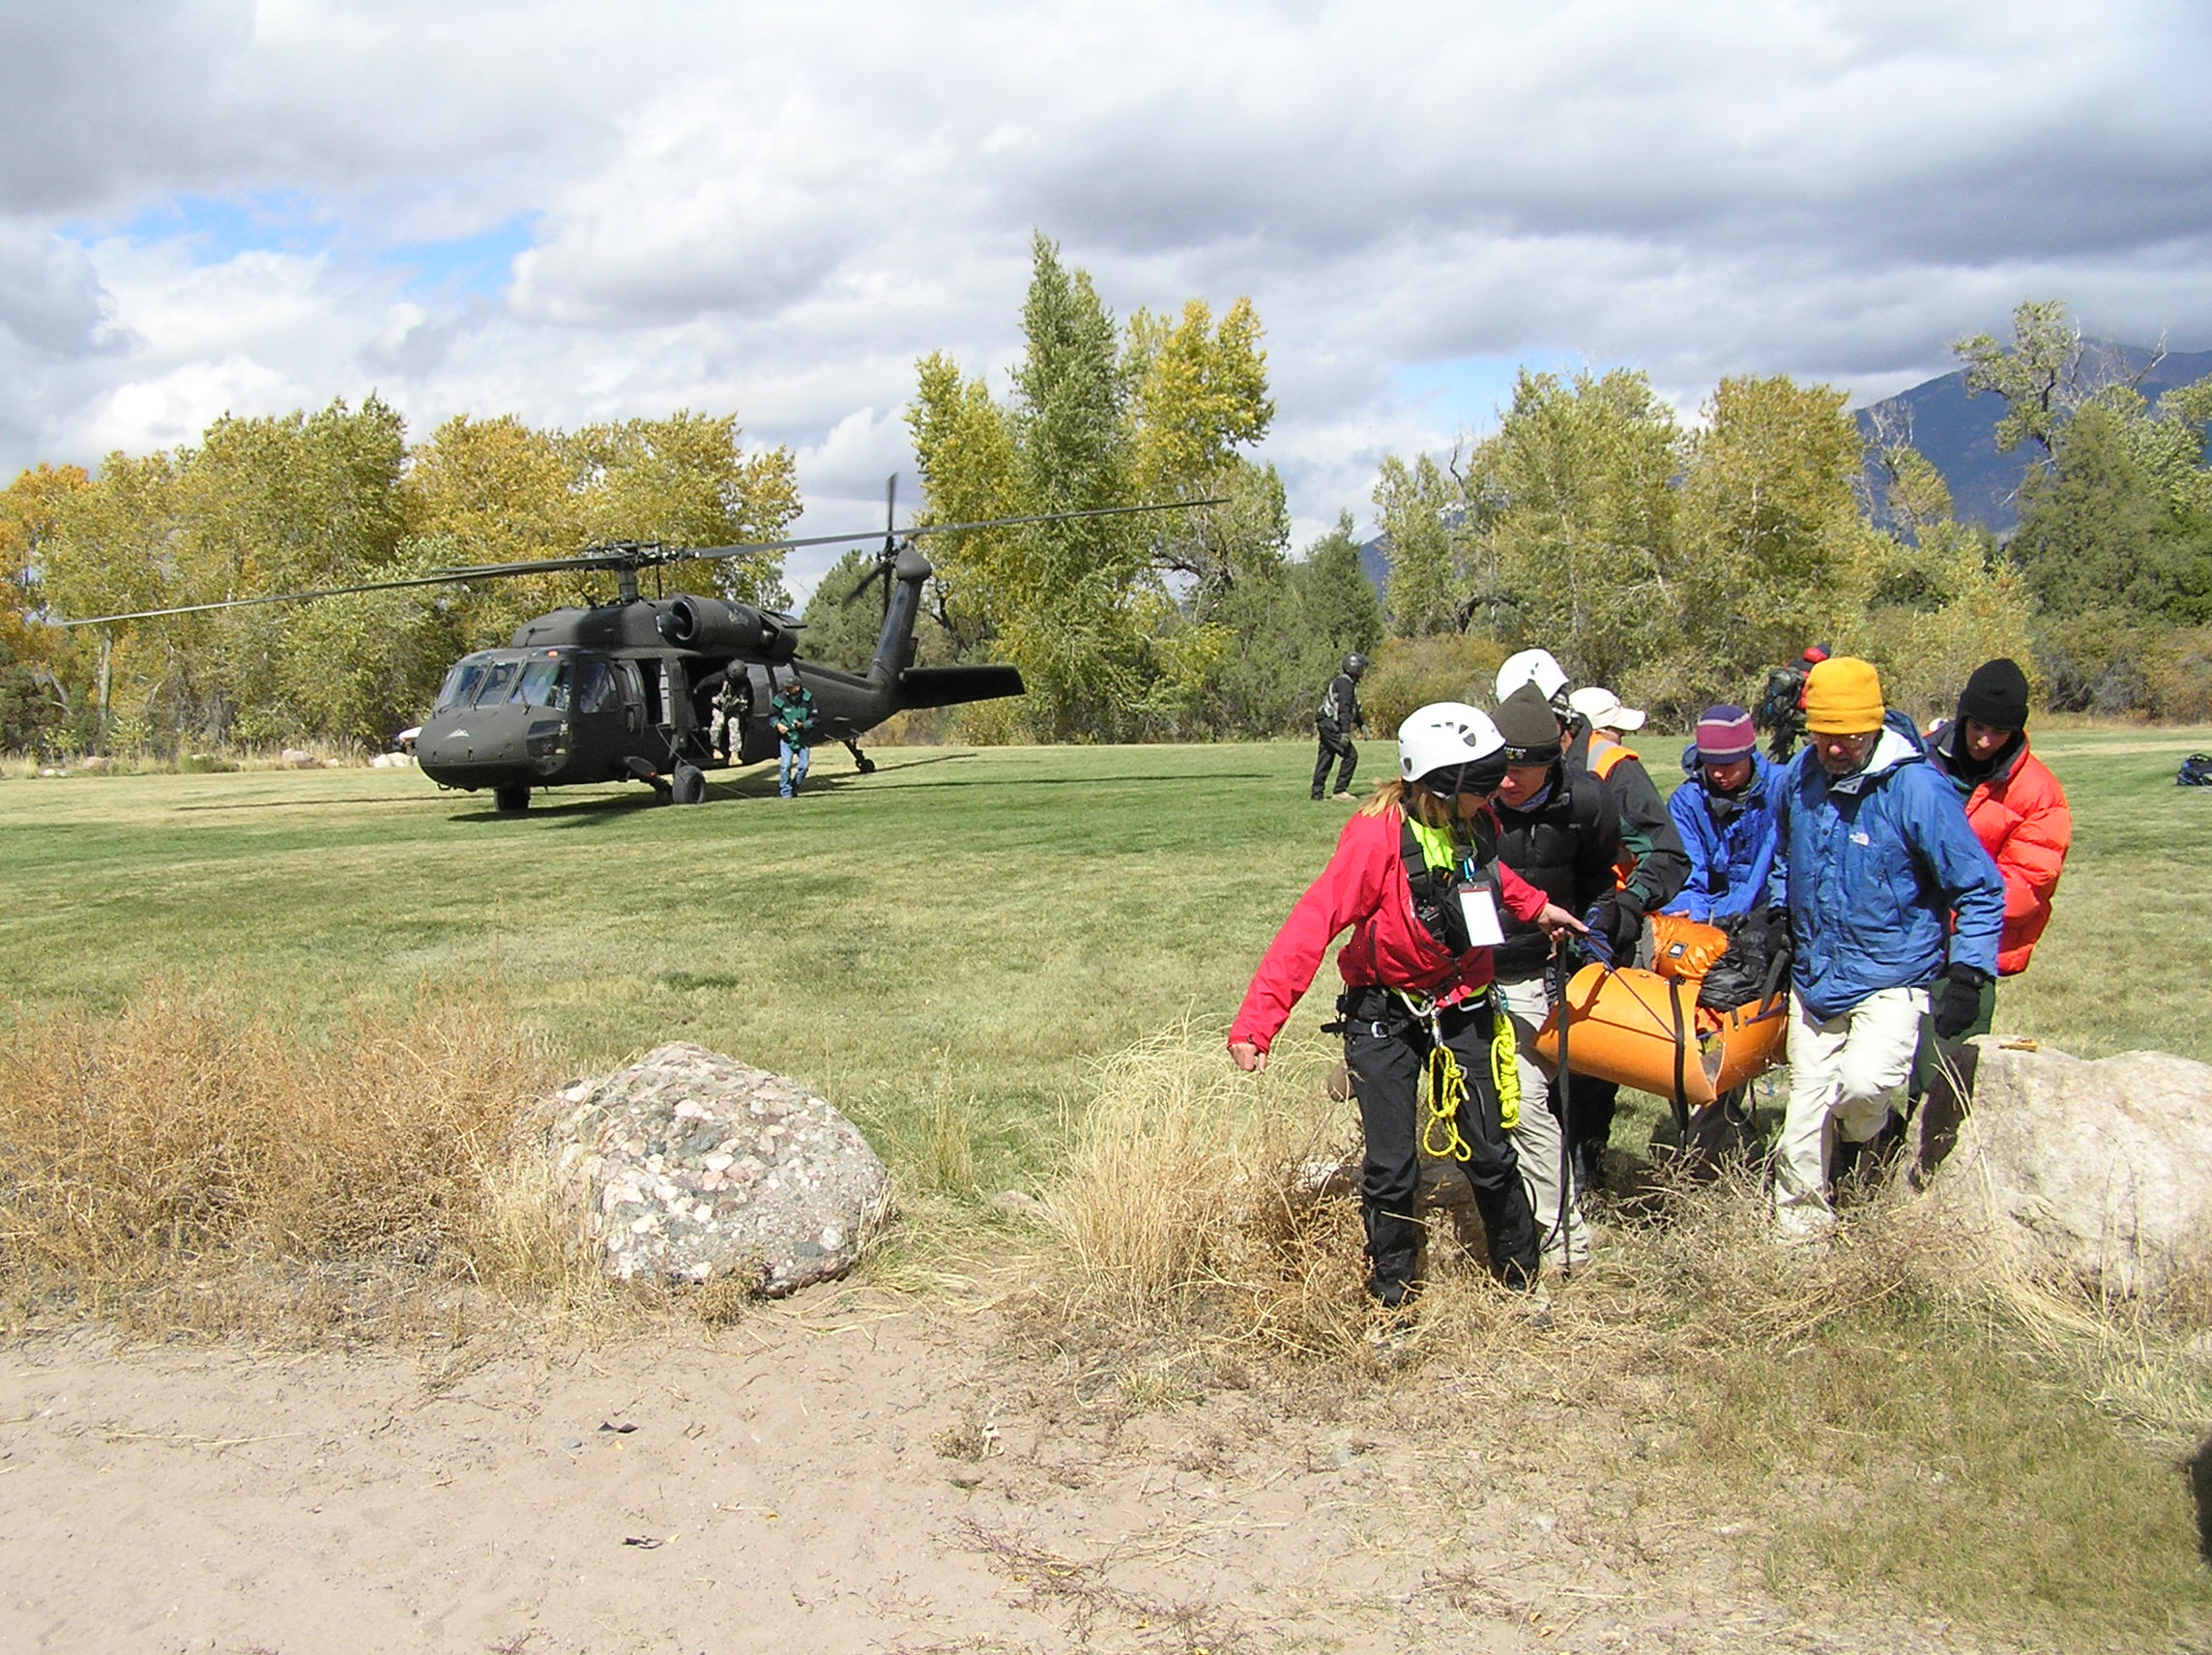 Rescue of Subject Oct. 4, 2009